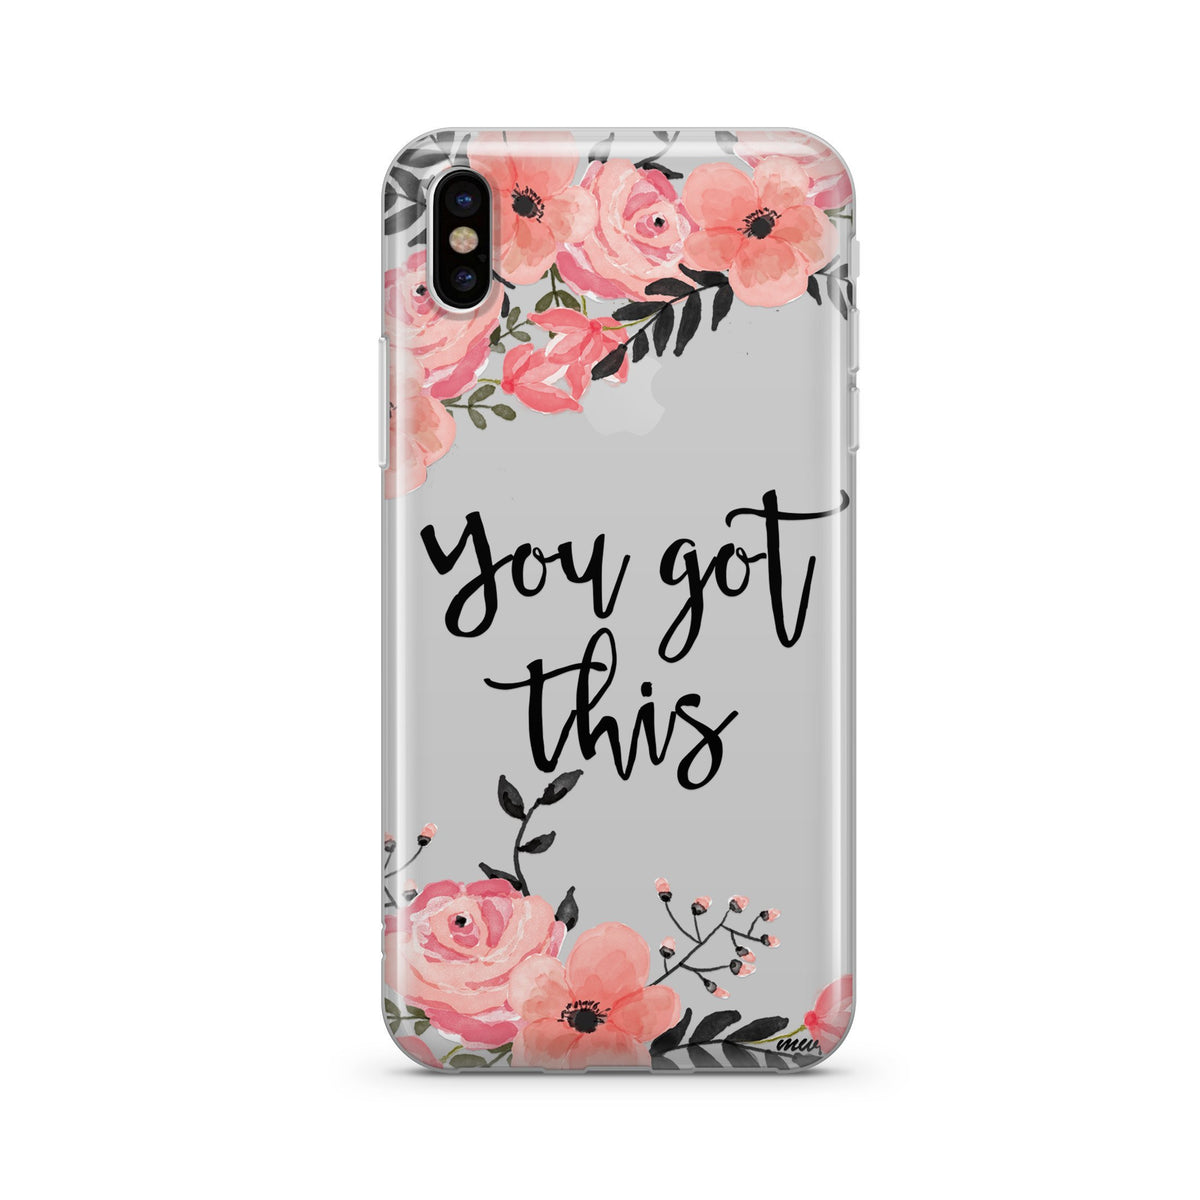 You Got This - Clear TPU iPhone Case / Samsung Case Phone Cover